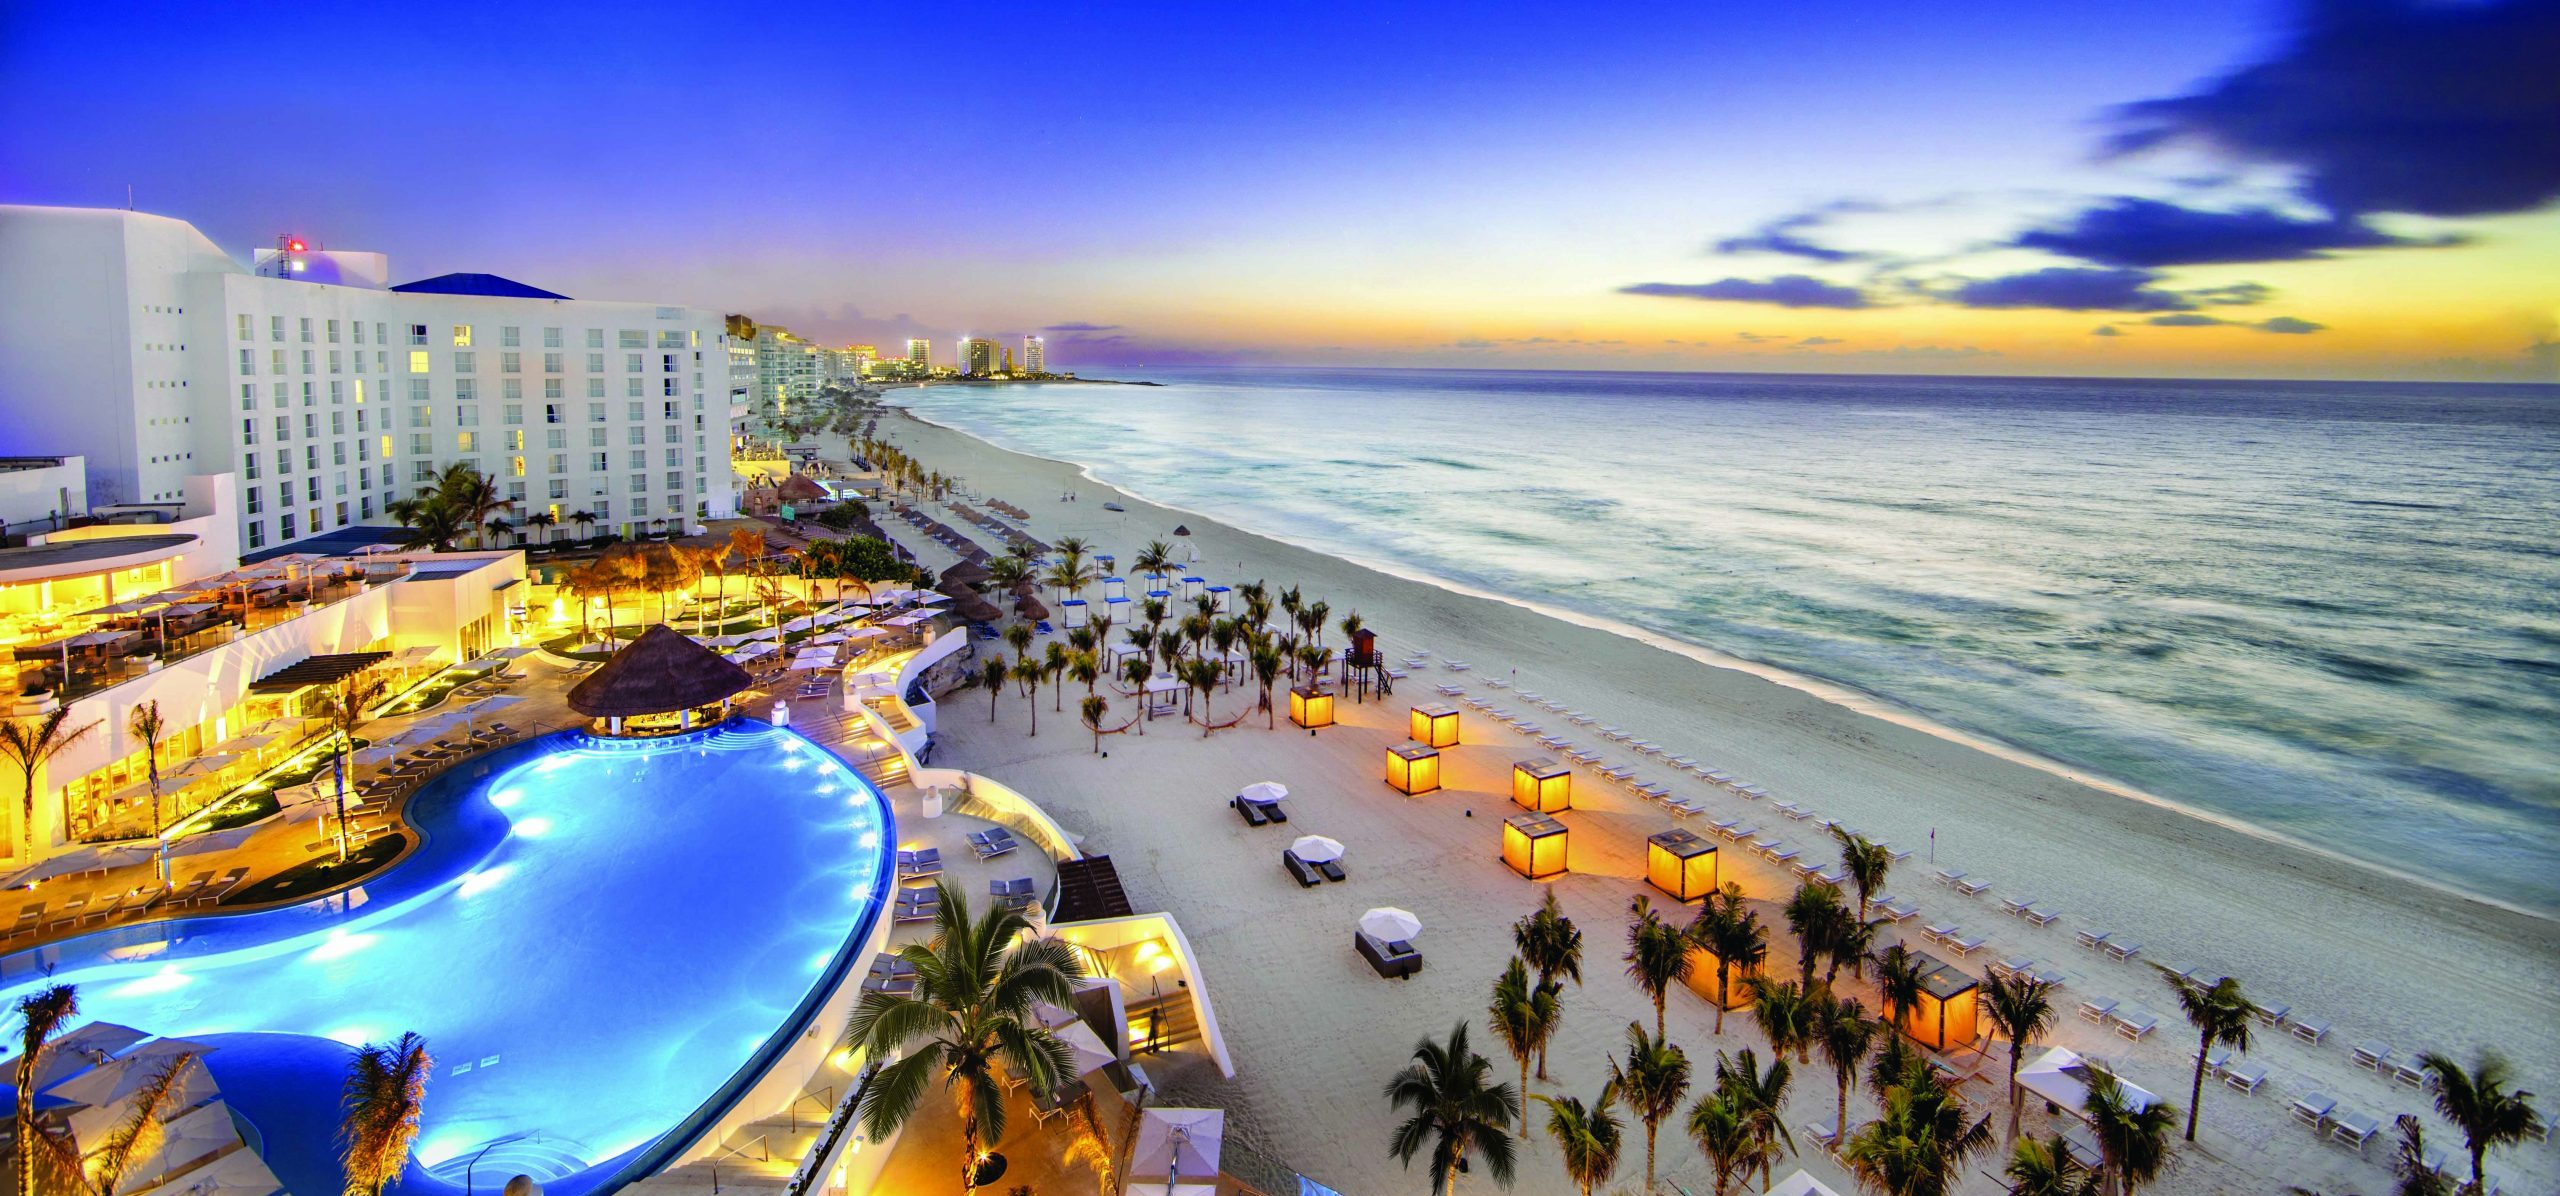 Welcoming Le Blanc Resorts in Cancun and Los Cabos